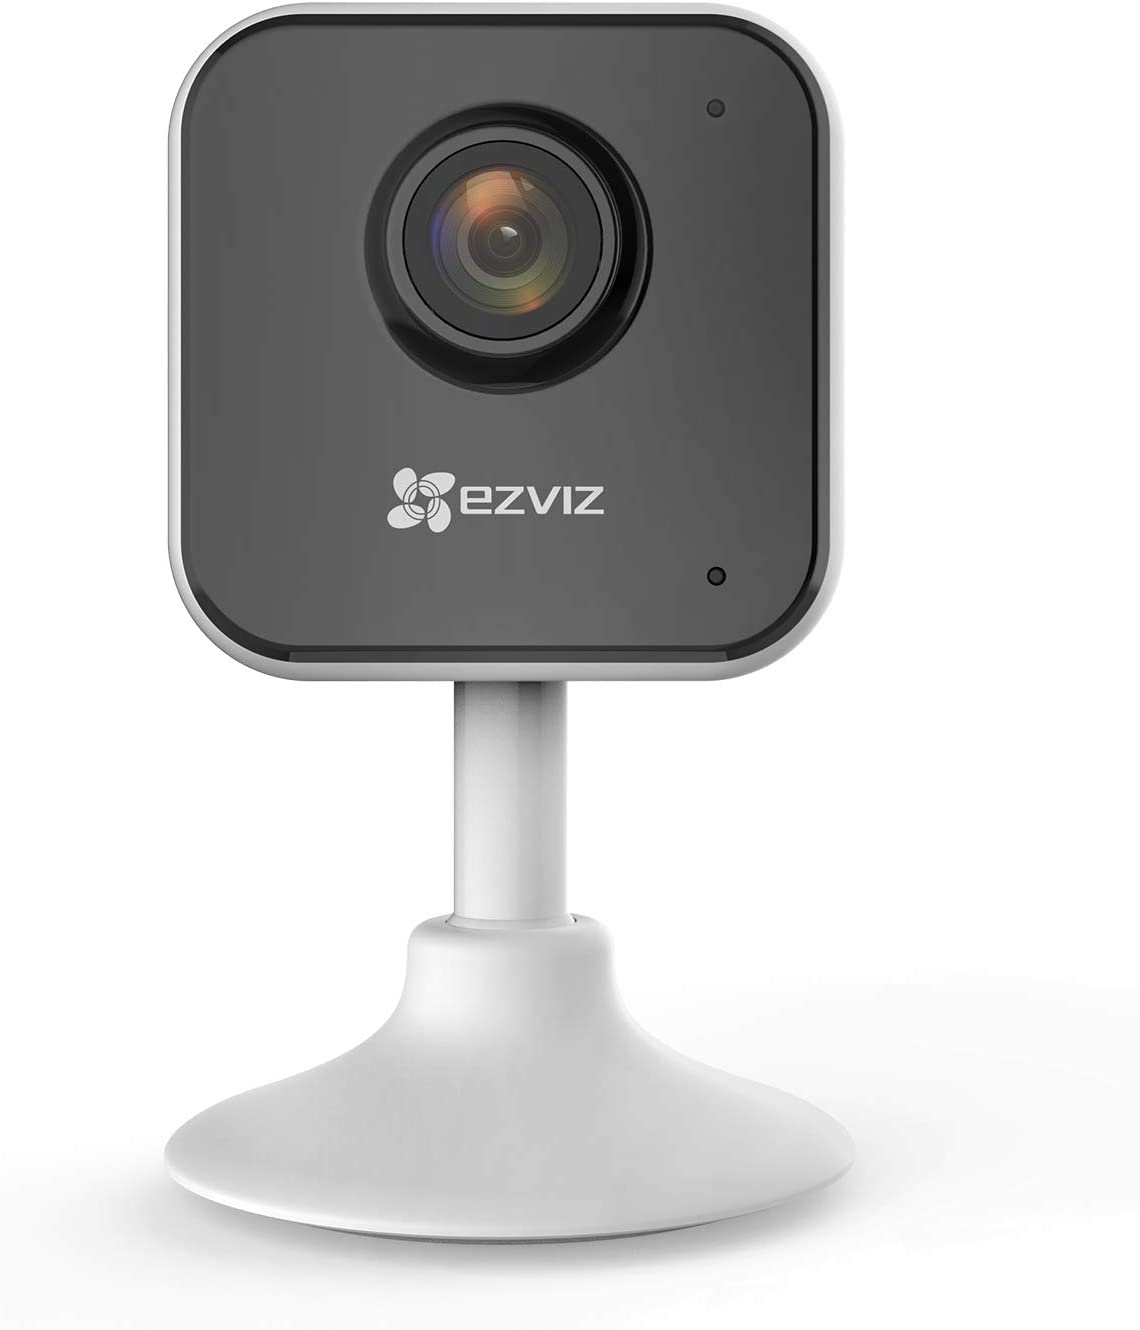 EZVIZ C1HC New Indoor 2.4G Wi-Fi Security Camera 1080P FHD Smart Motion Detection Zone Full Duplex 2-Way Audio 40ft Night Vision 130° Wide Angle Work with Alexa Google iOS Android App